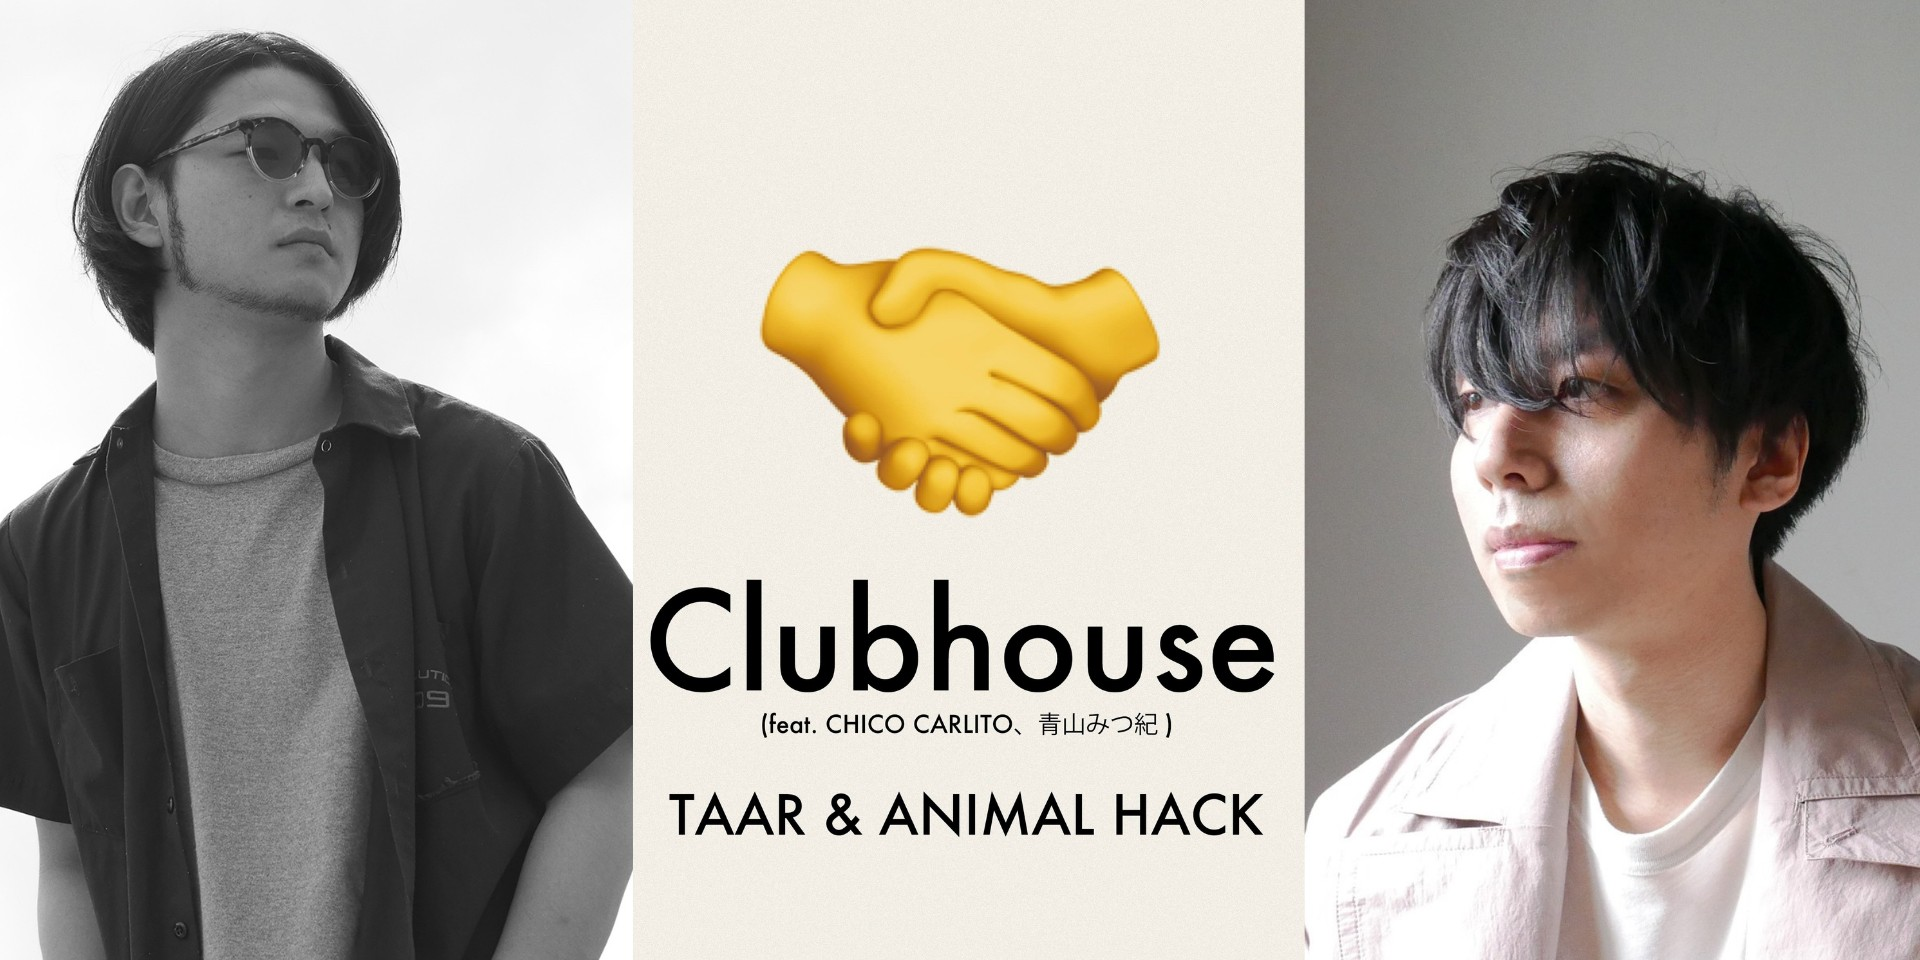 Japanese artists unveil first Japanese song to be produced through Clubhouse app